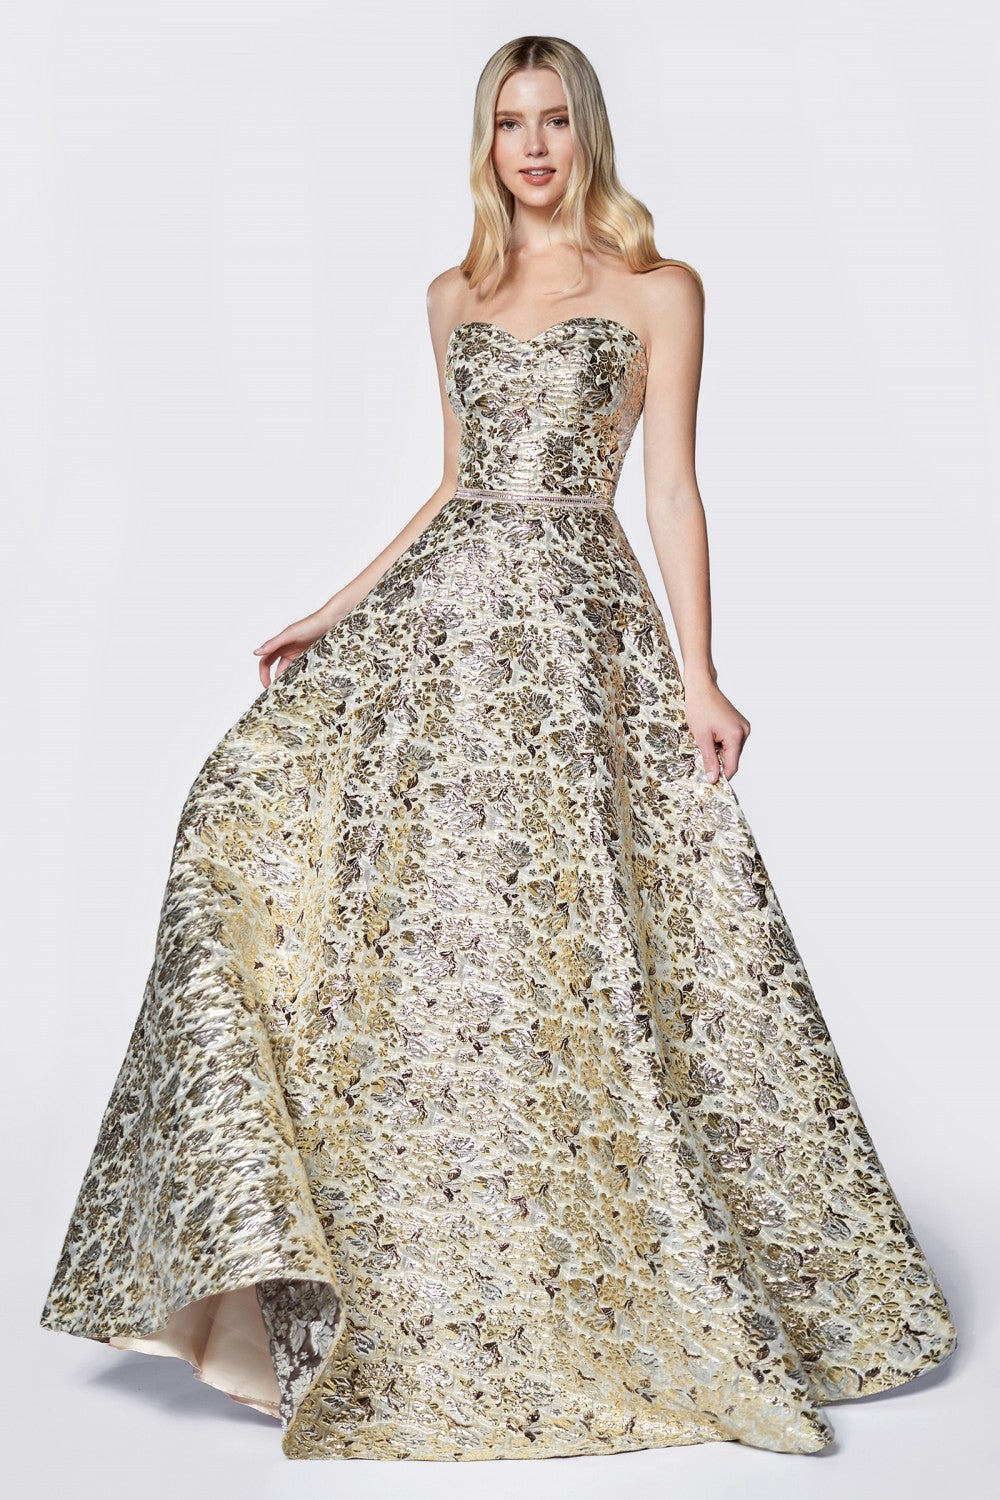 Strapless Ball Gown With Metallic Brocade Details And Beaded Belt